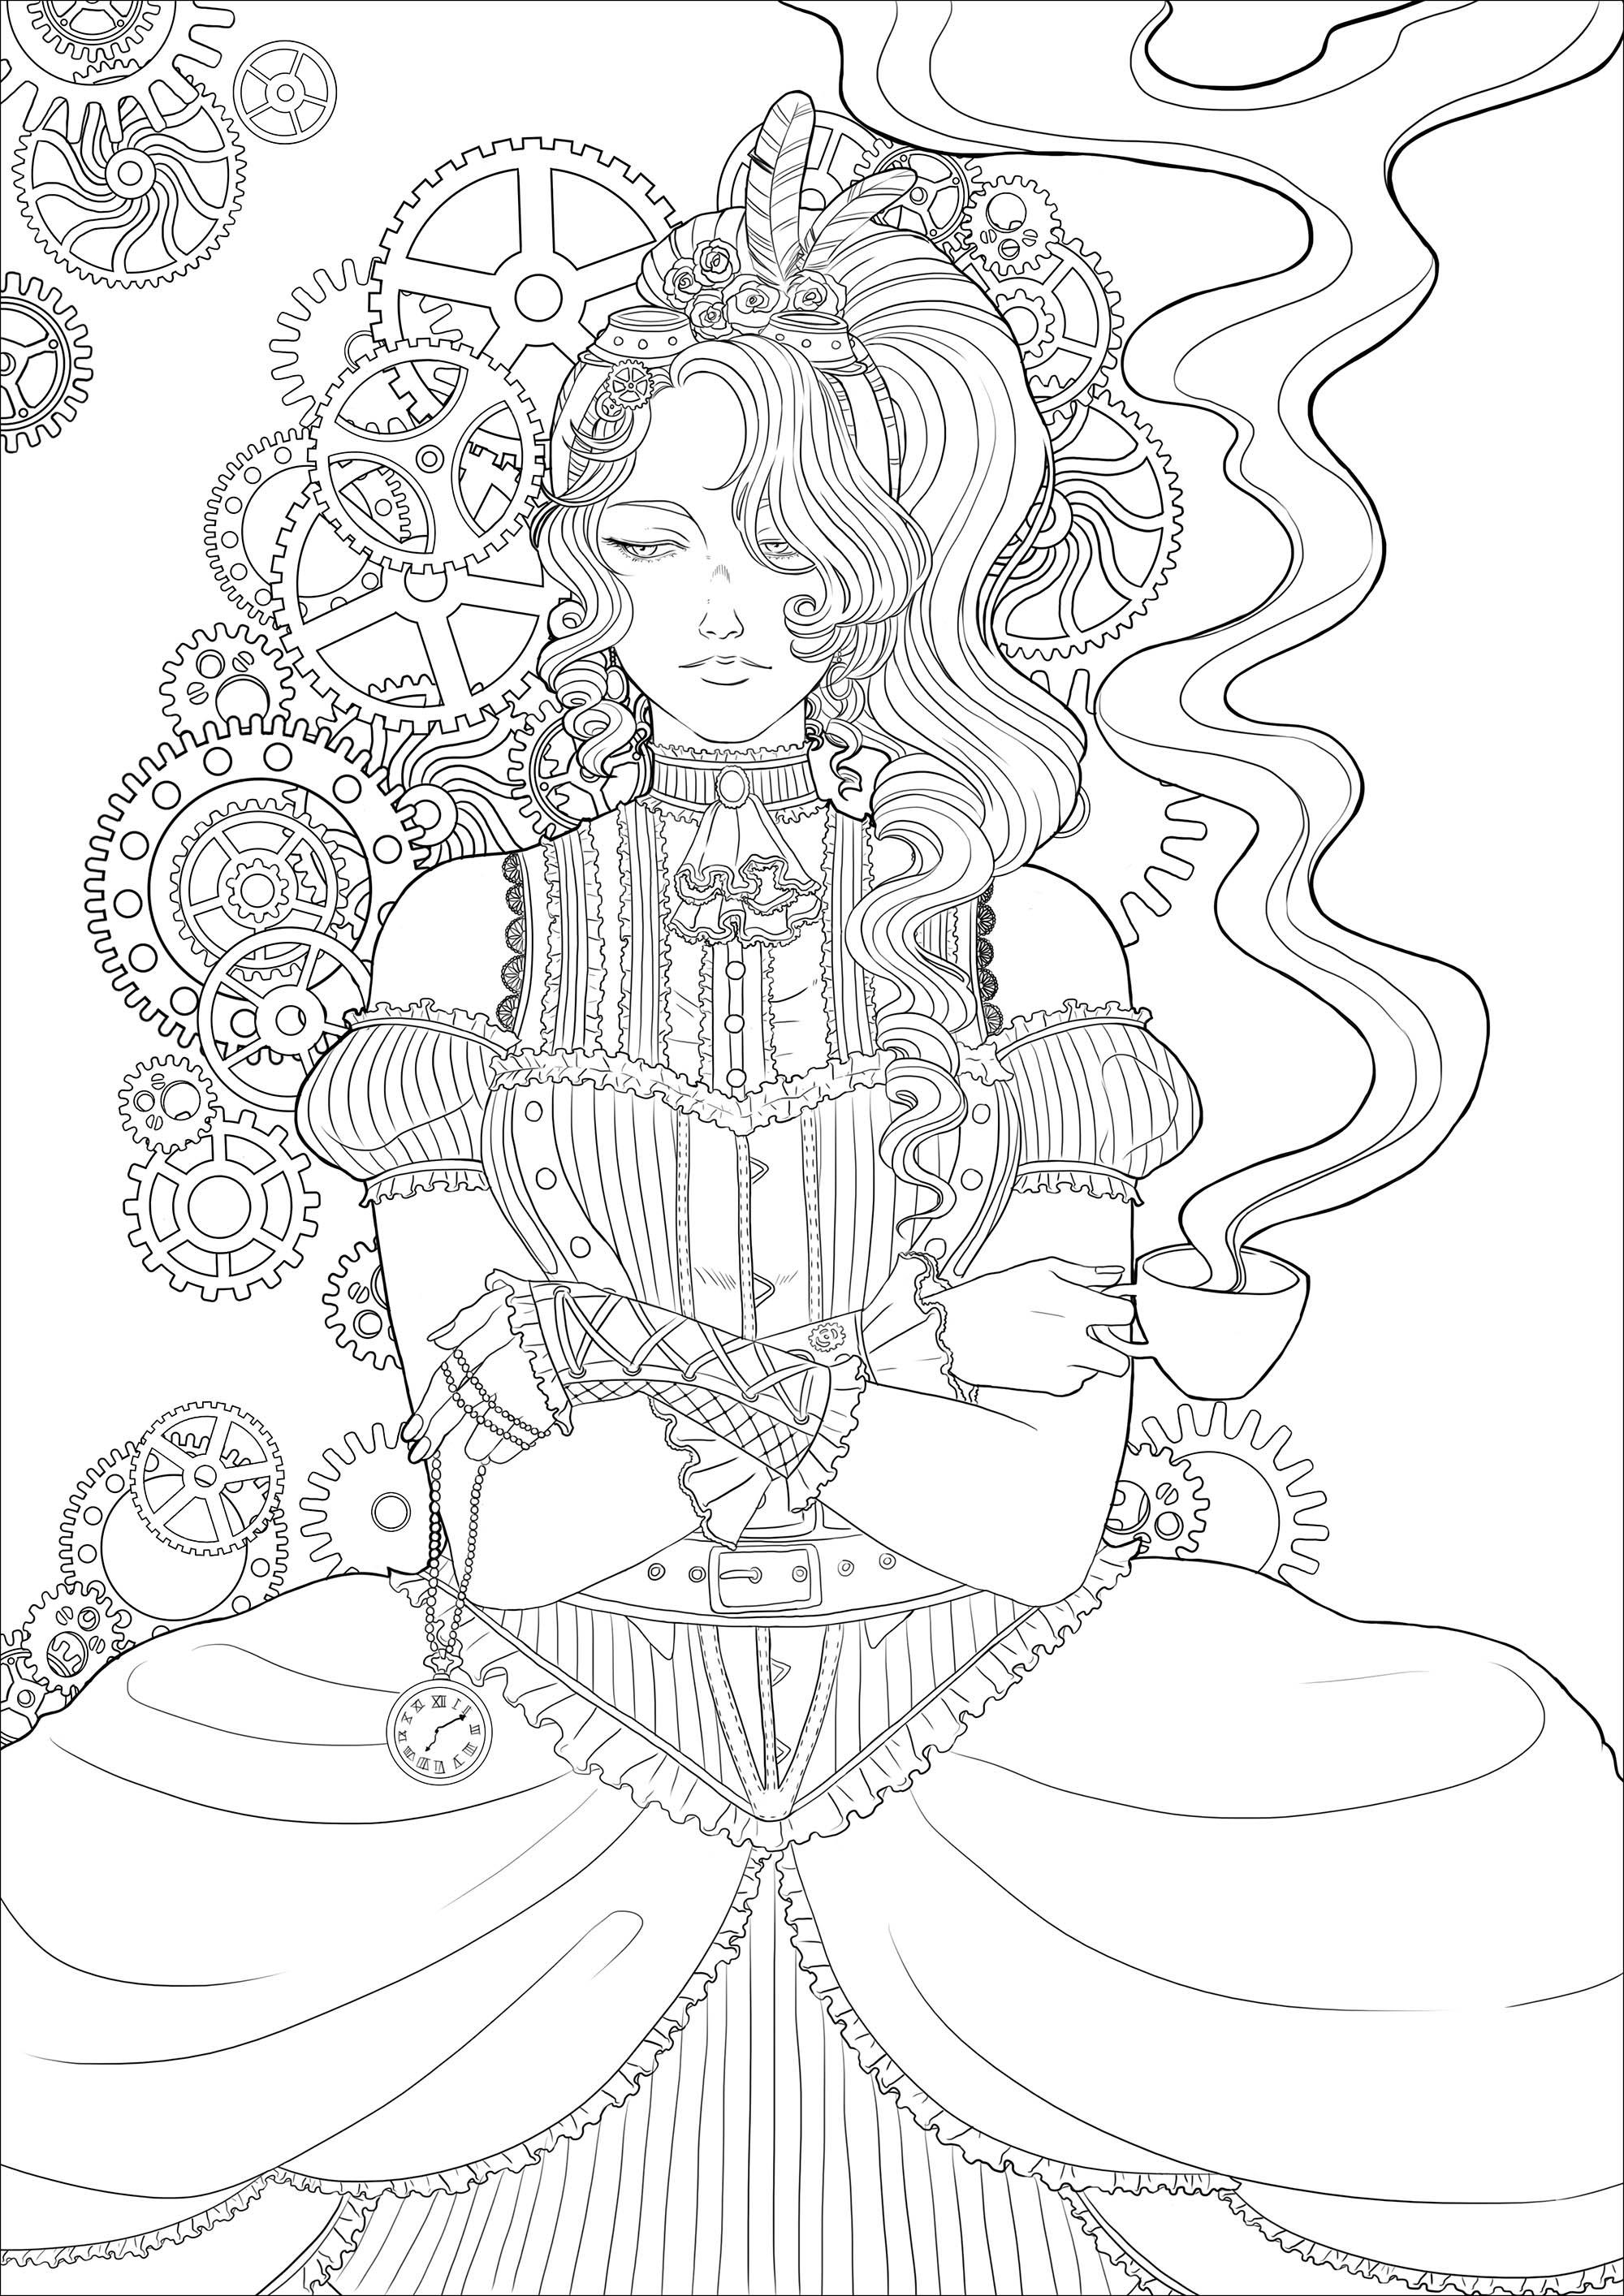 Coloring page of a melancholy young woman with a cup of tea, all in a Victorian environment and mechanisms